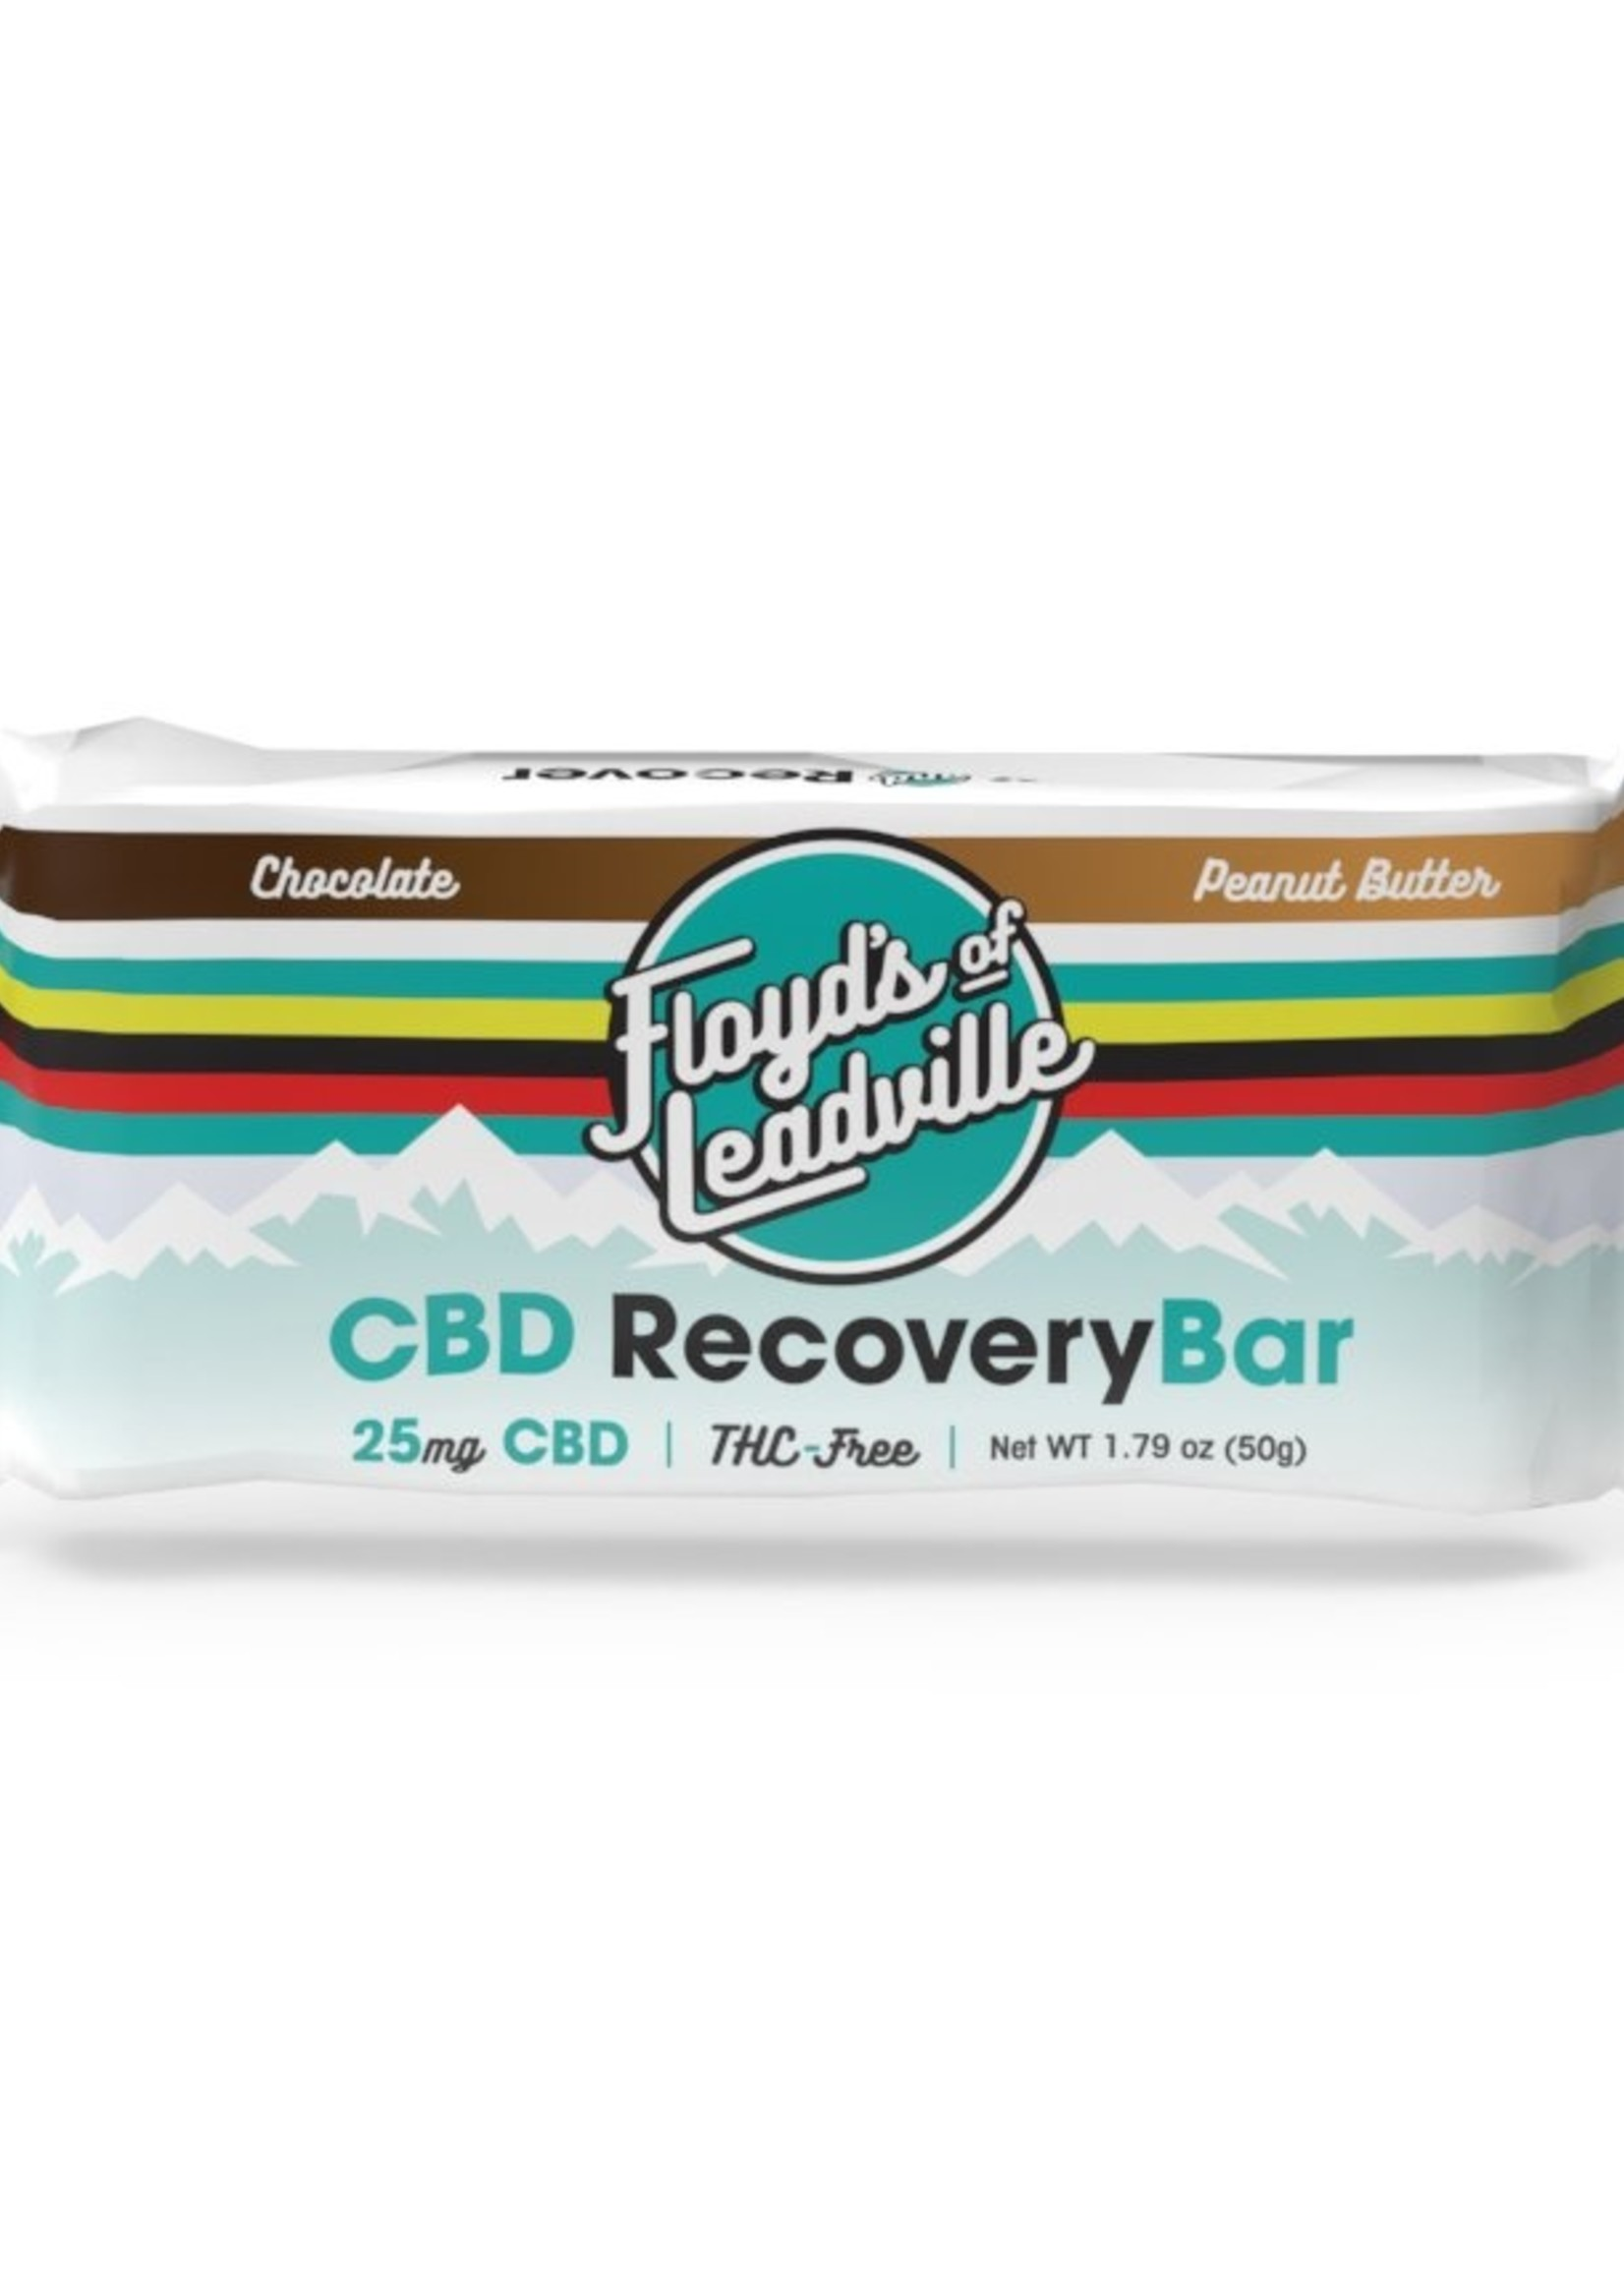 Floyds of Leadville Floyd's of Leadville Recovery Bar 25mg